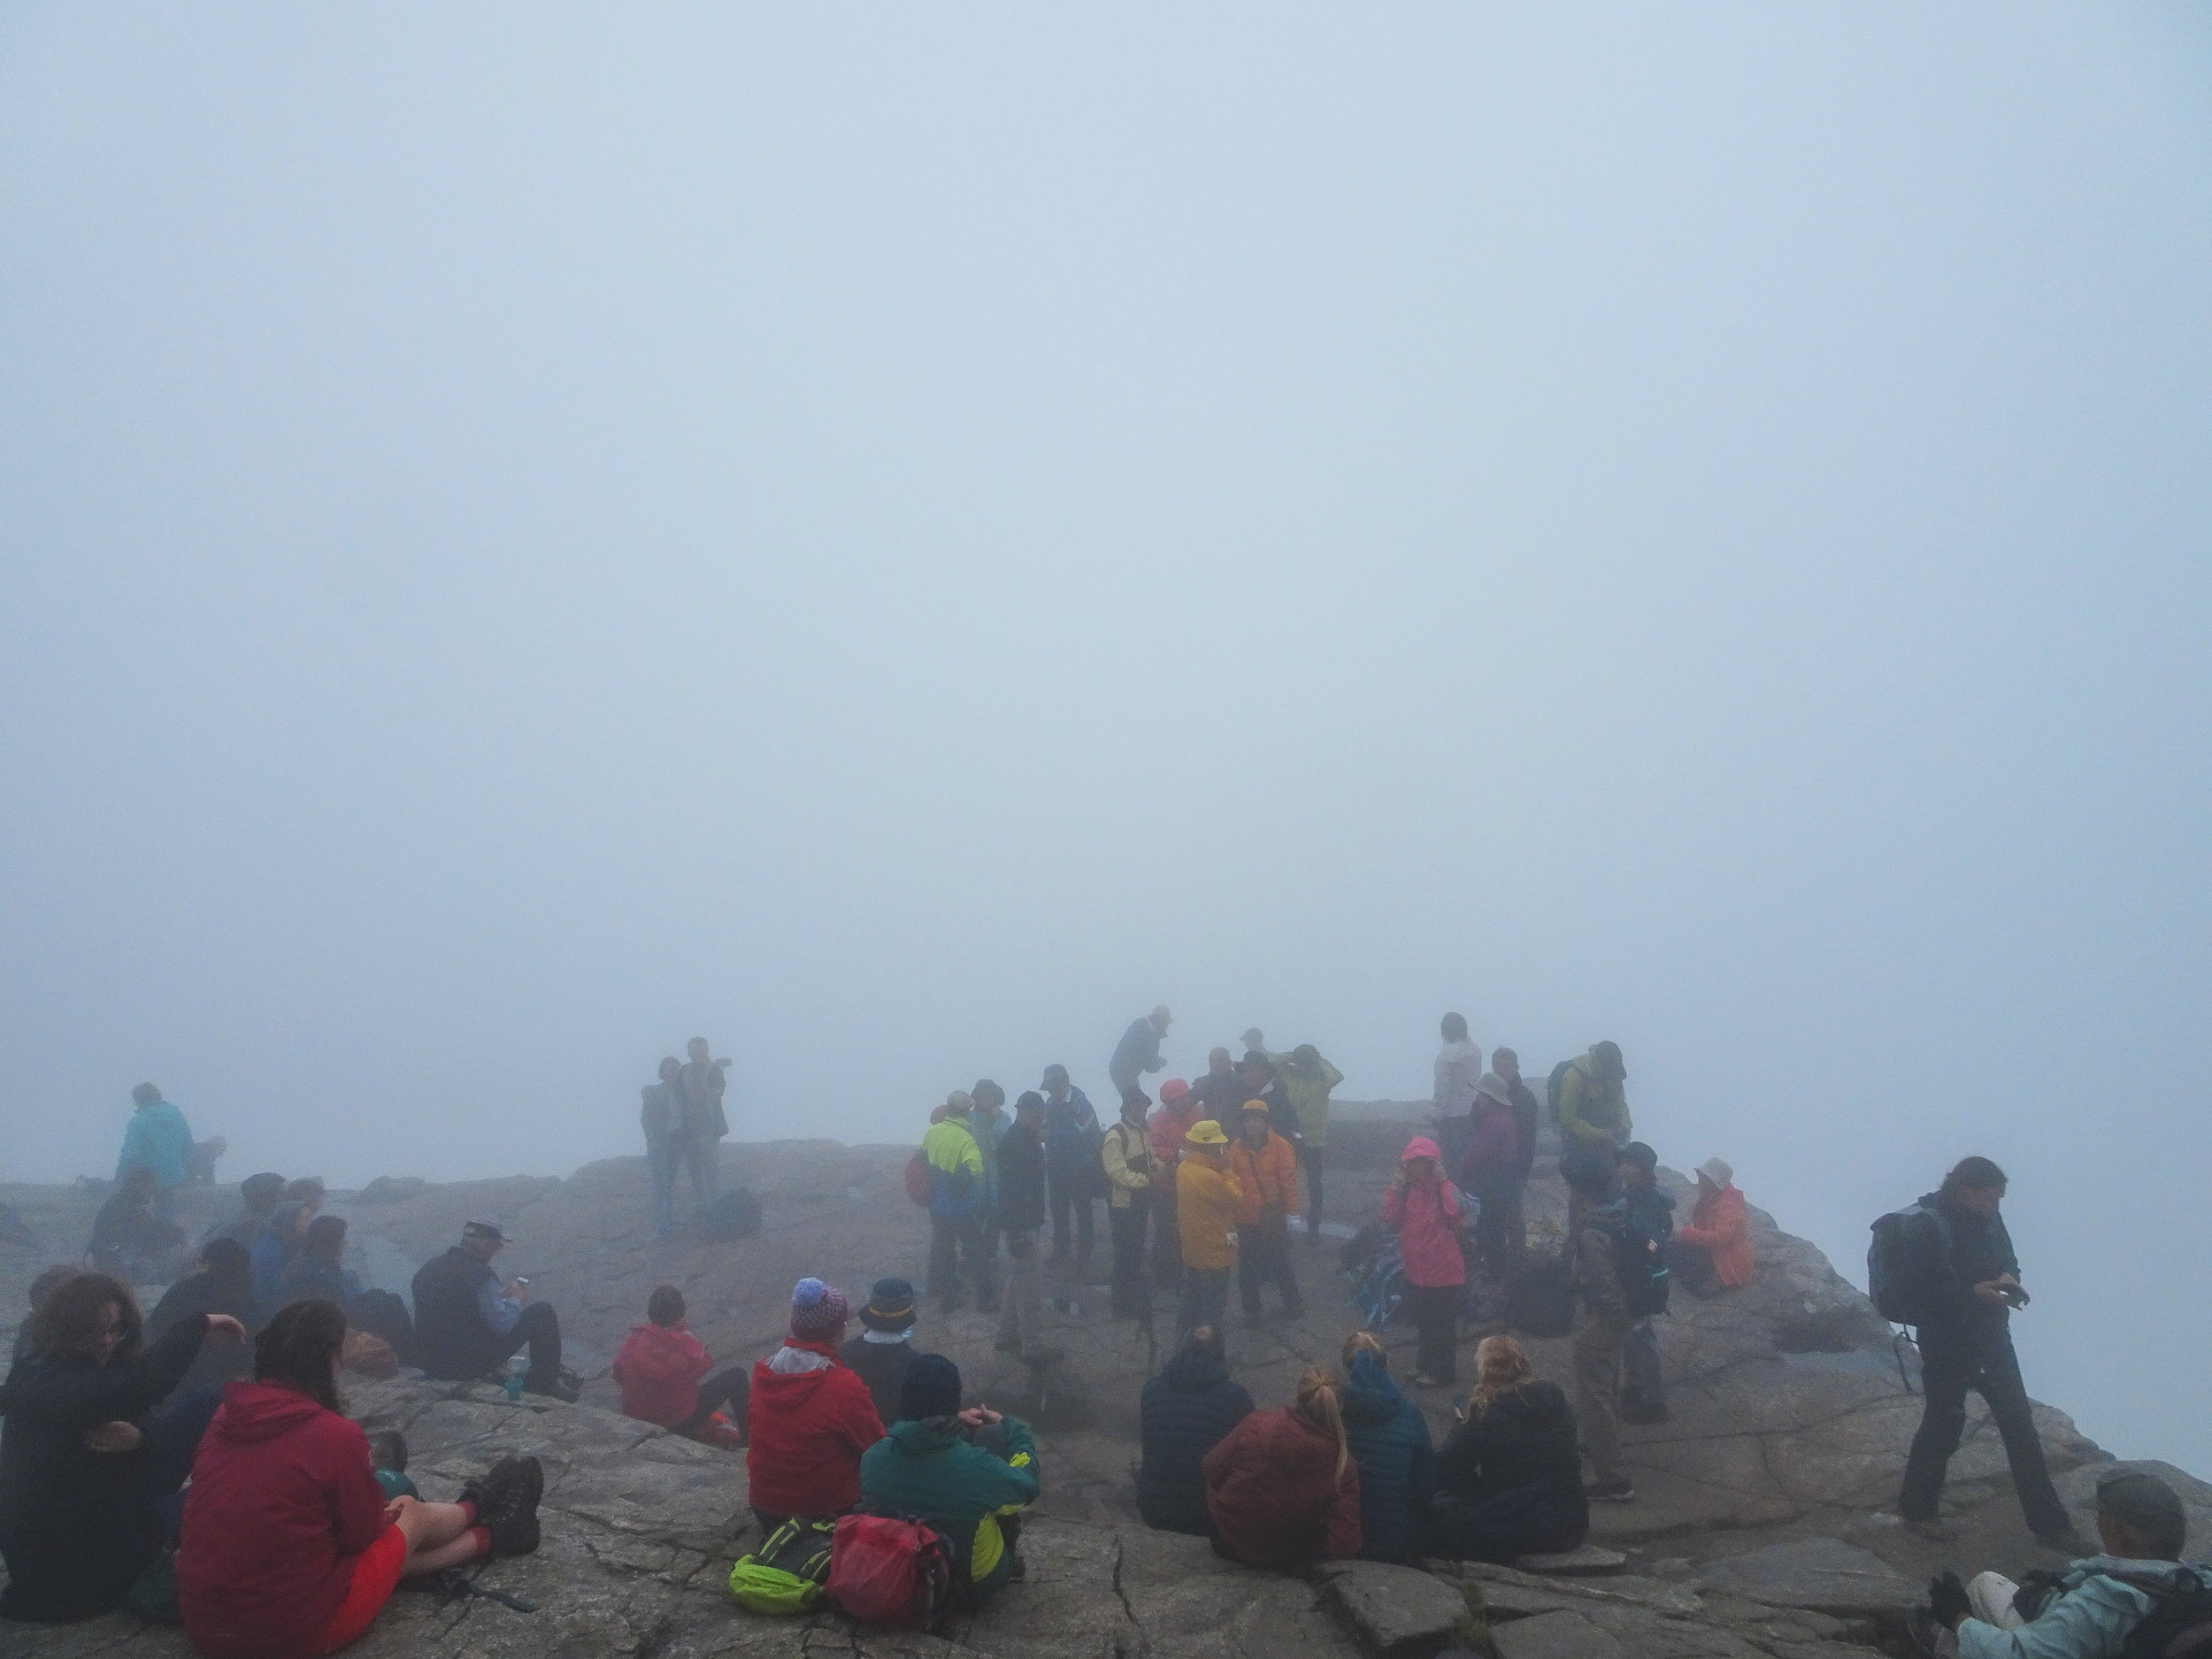 This is how crowded Preikestolen is even on a foggy day. The picture was taken midday in late June.